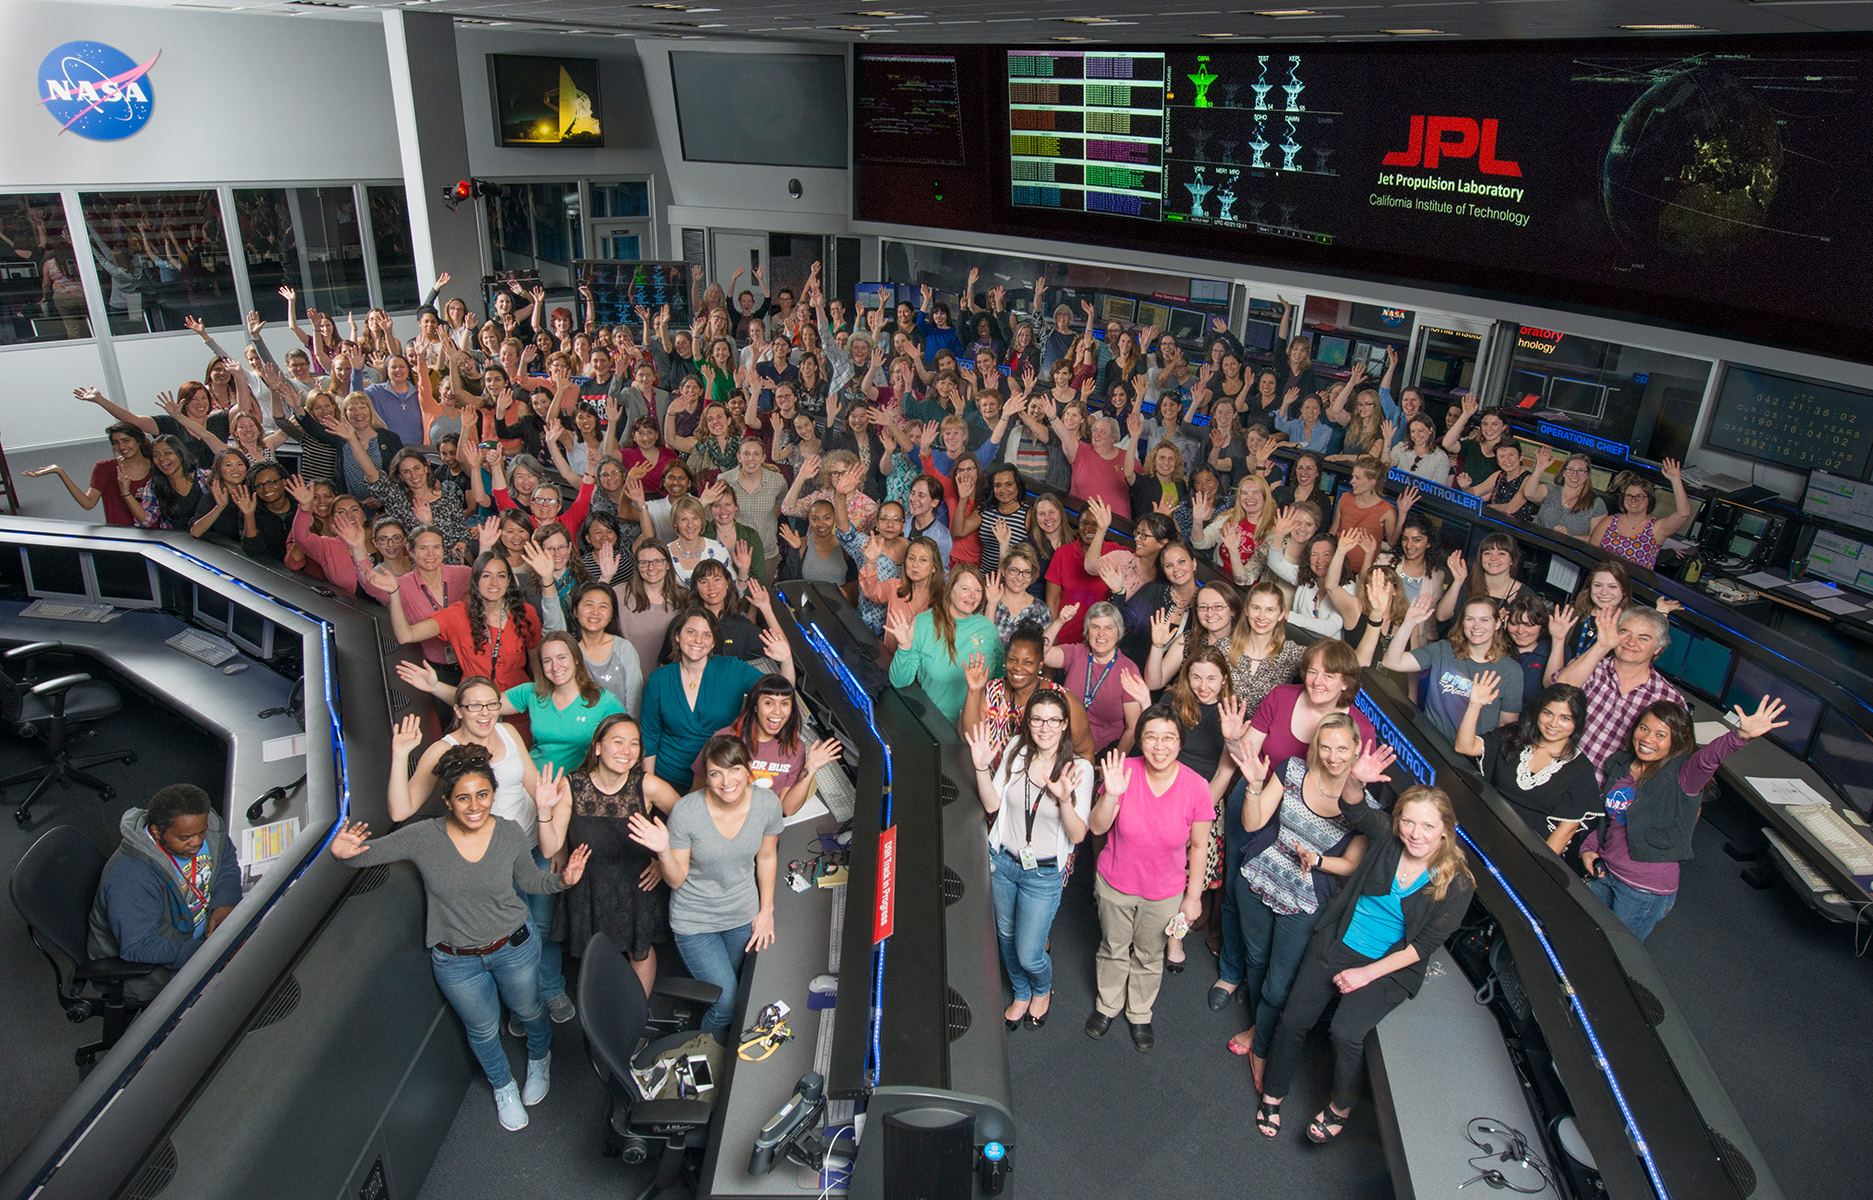 Celebrating Women in Science - Edu News | NASA/JPL Edu